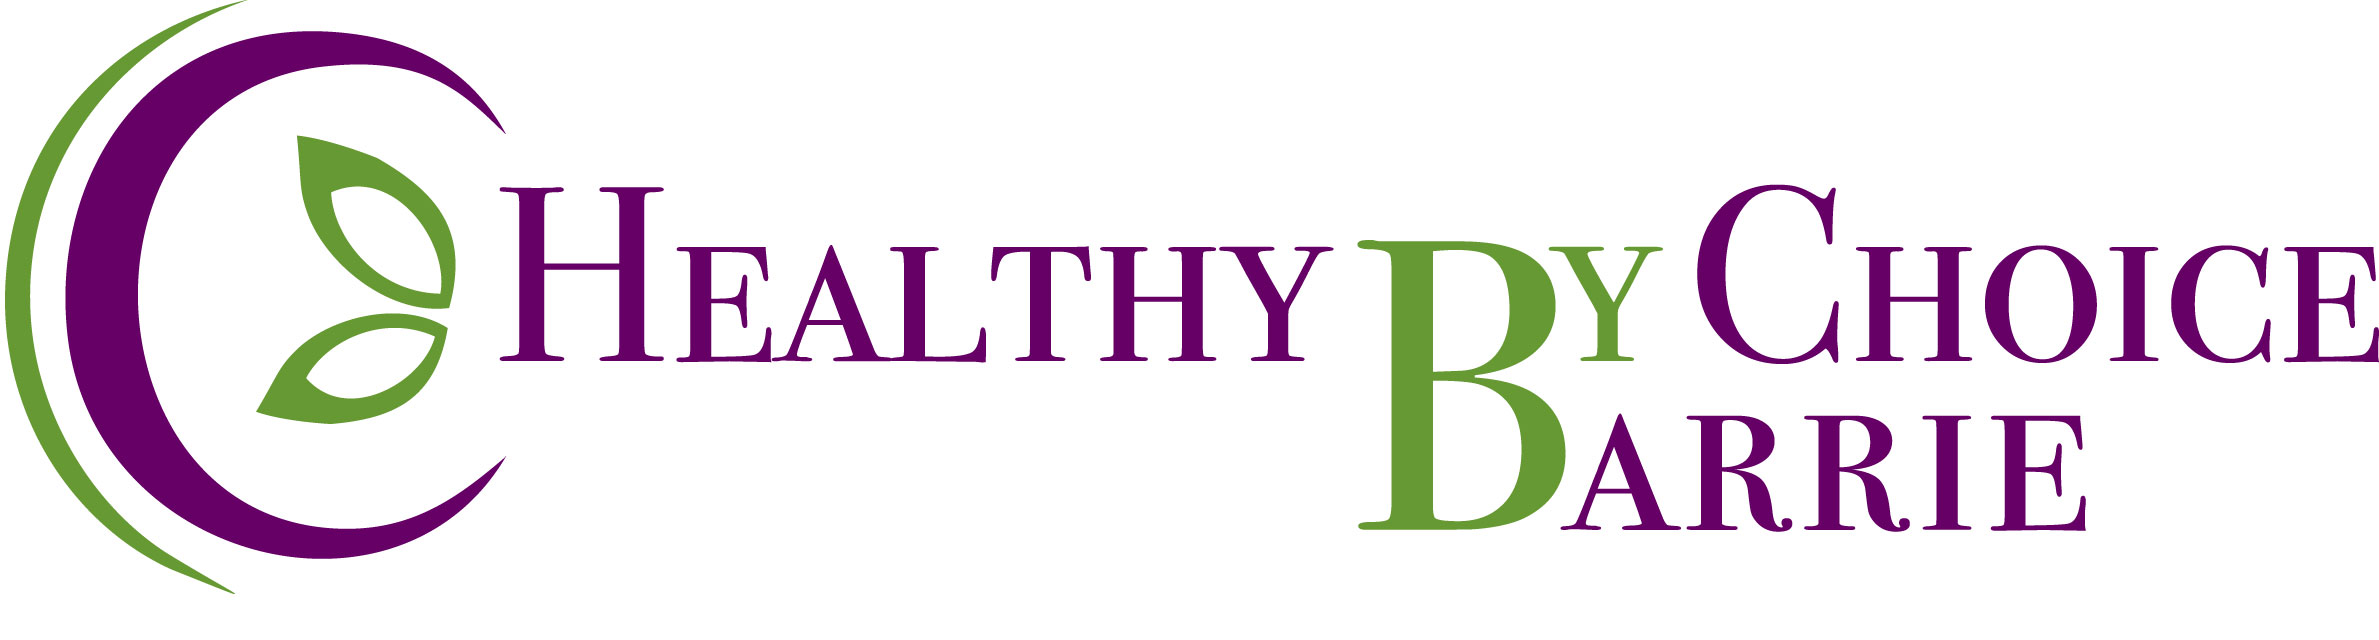 Healthy By Choice Barrie